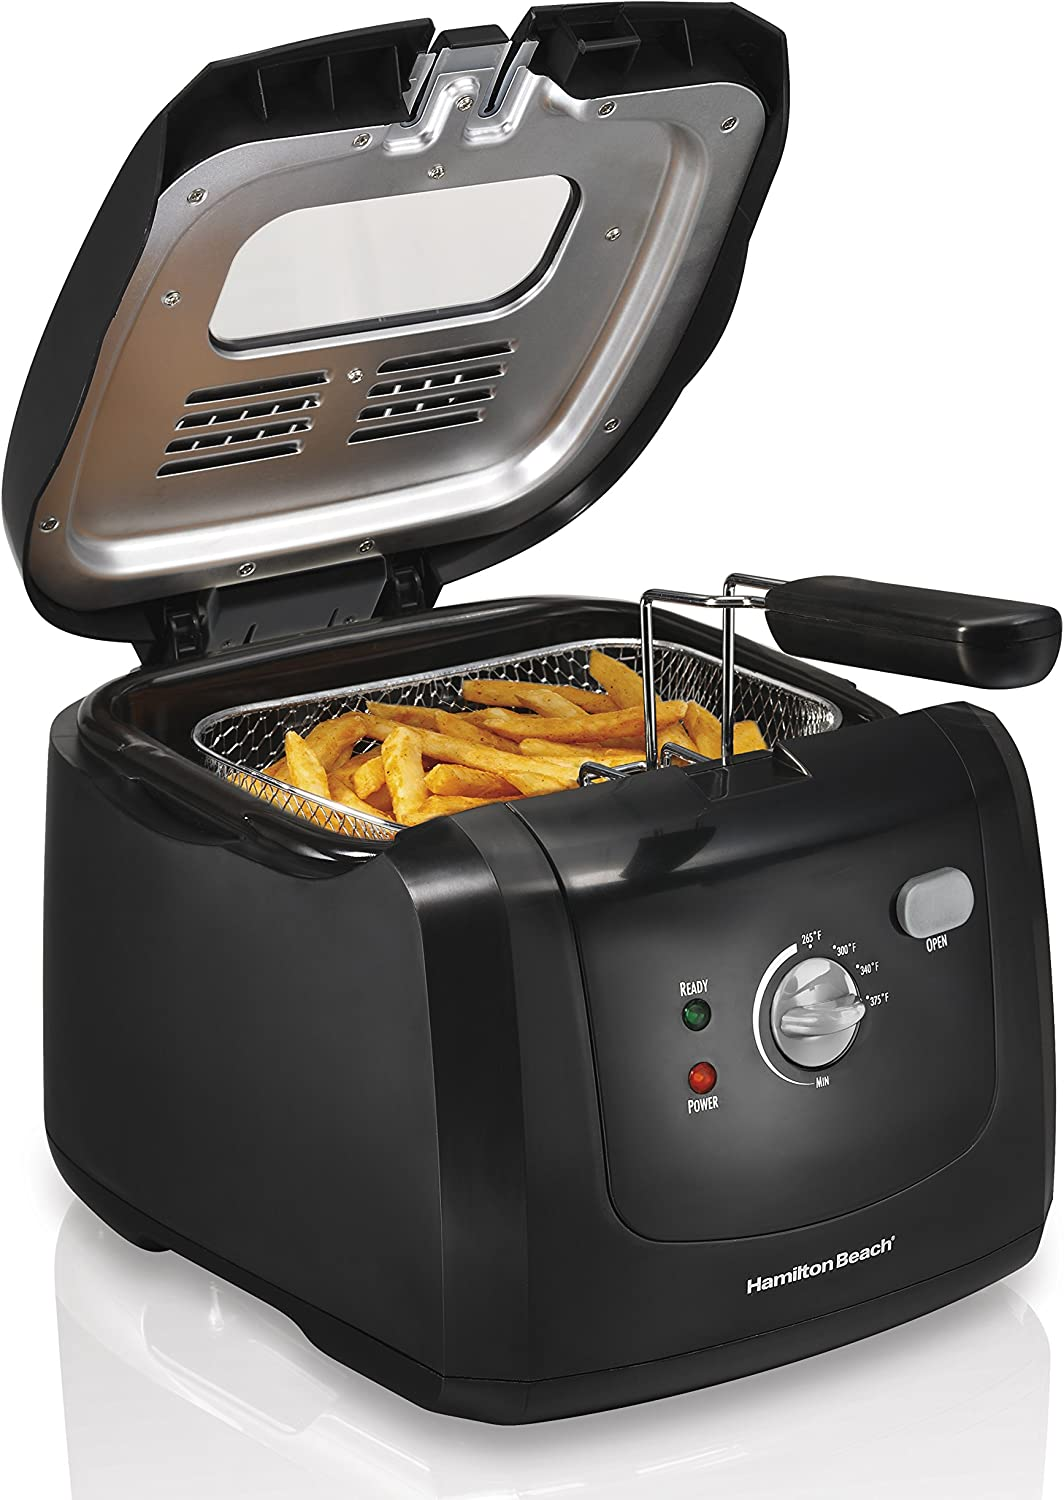 Hamilton Beach Cool-Touch Deep Fryer, 8 Cups 2 Liters Oil Capacity, Lid with View Window, Basket with Hooks, 1500 Watts, Electric, Black 35021